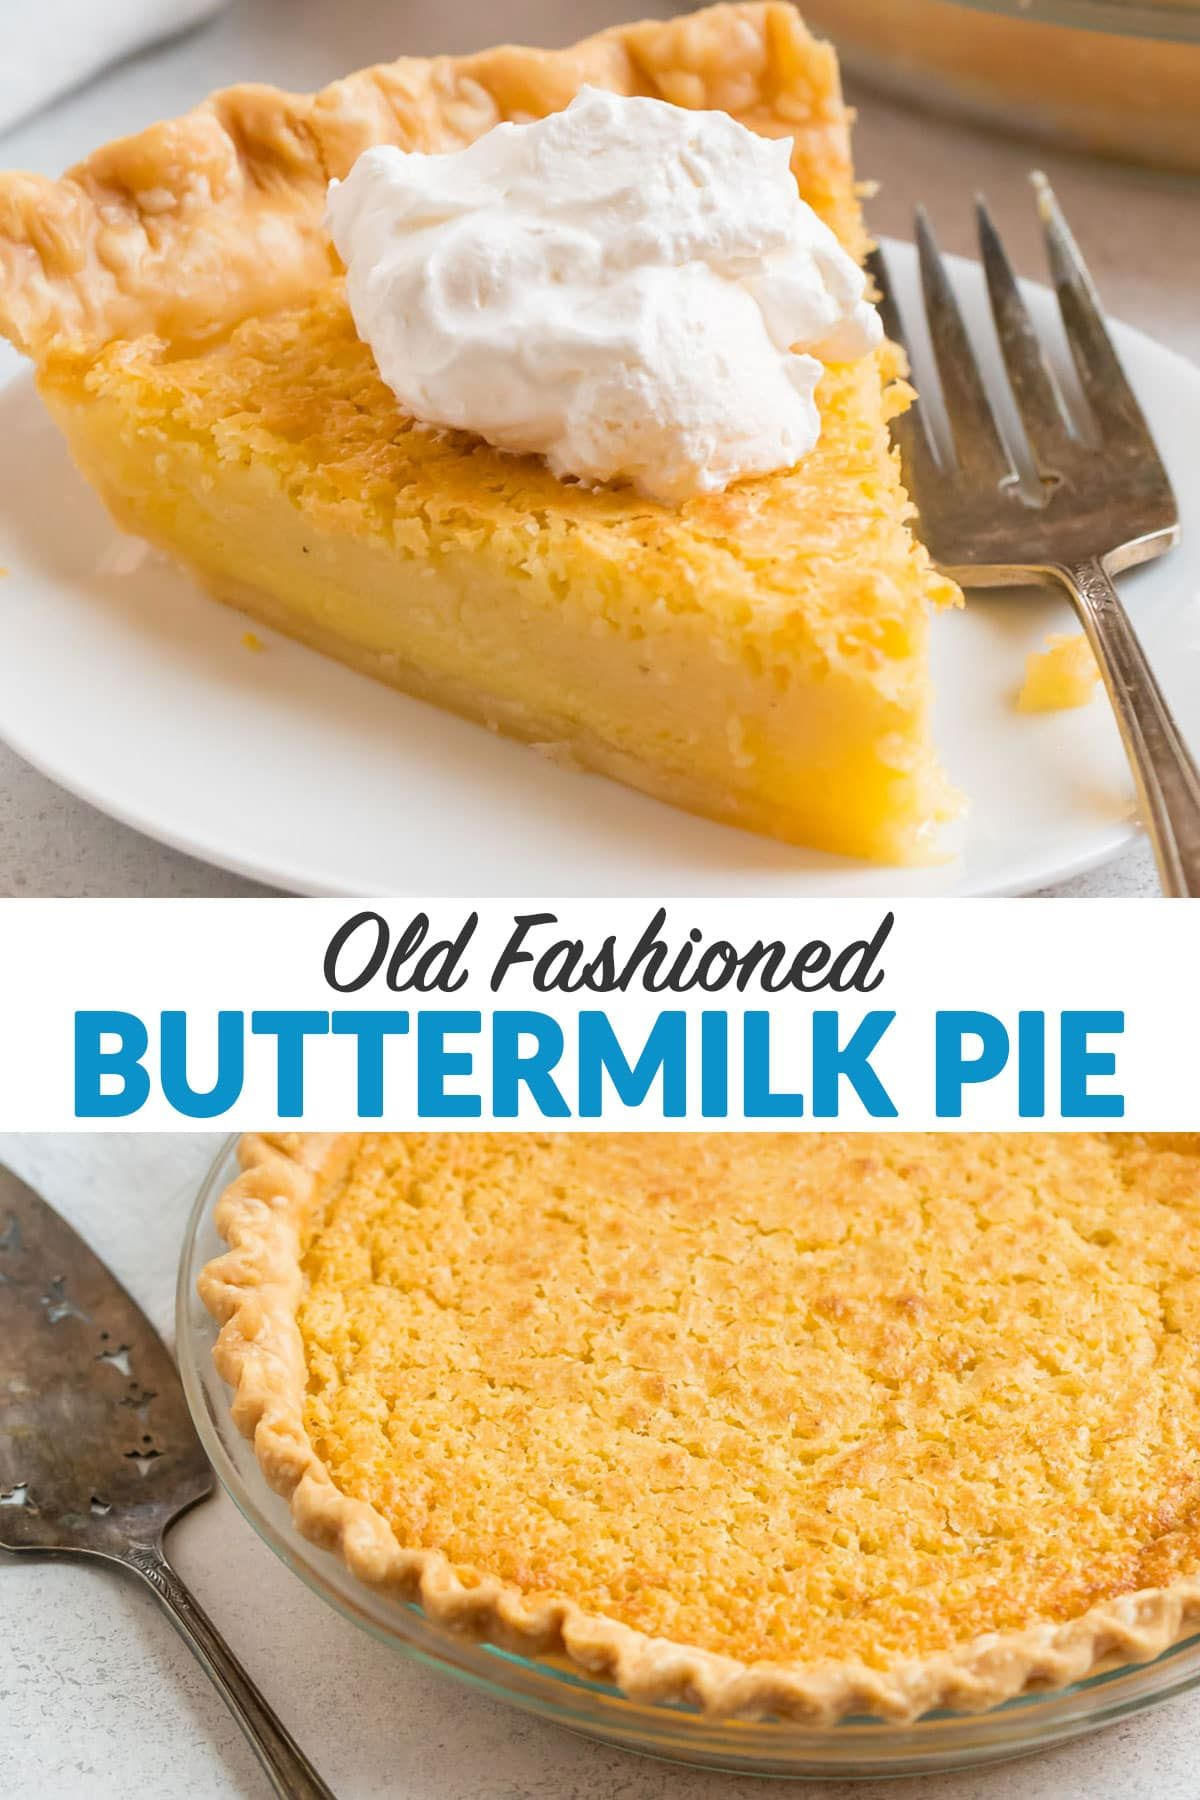 Buttermilk Pie Is An Old Fashioned Southern Custard Pie Made With Basic Pantry Ingredients The Easy Smooth Buttermilk Pie Dessert Pie Recipes Dessert Recipes